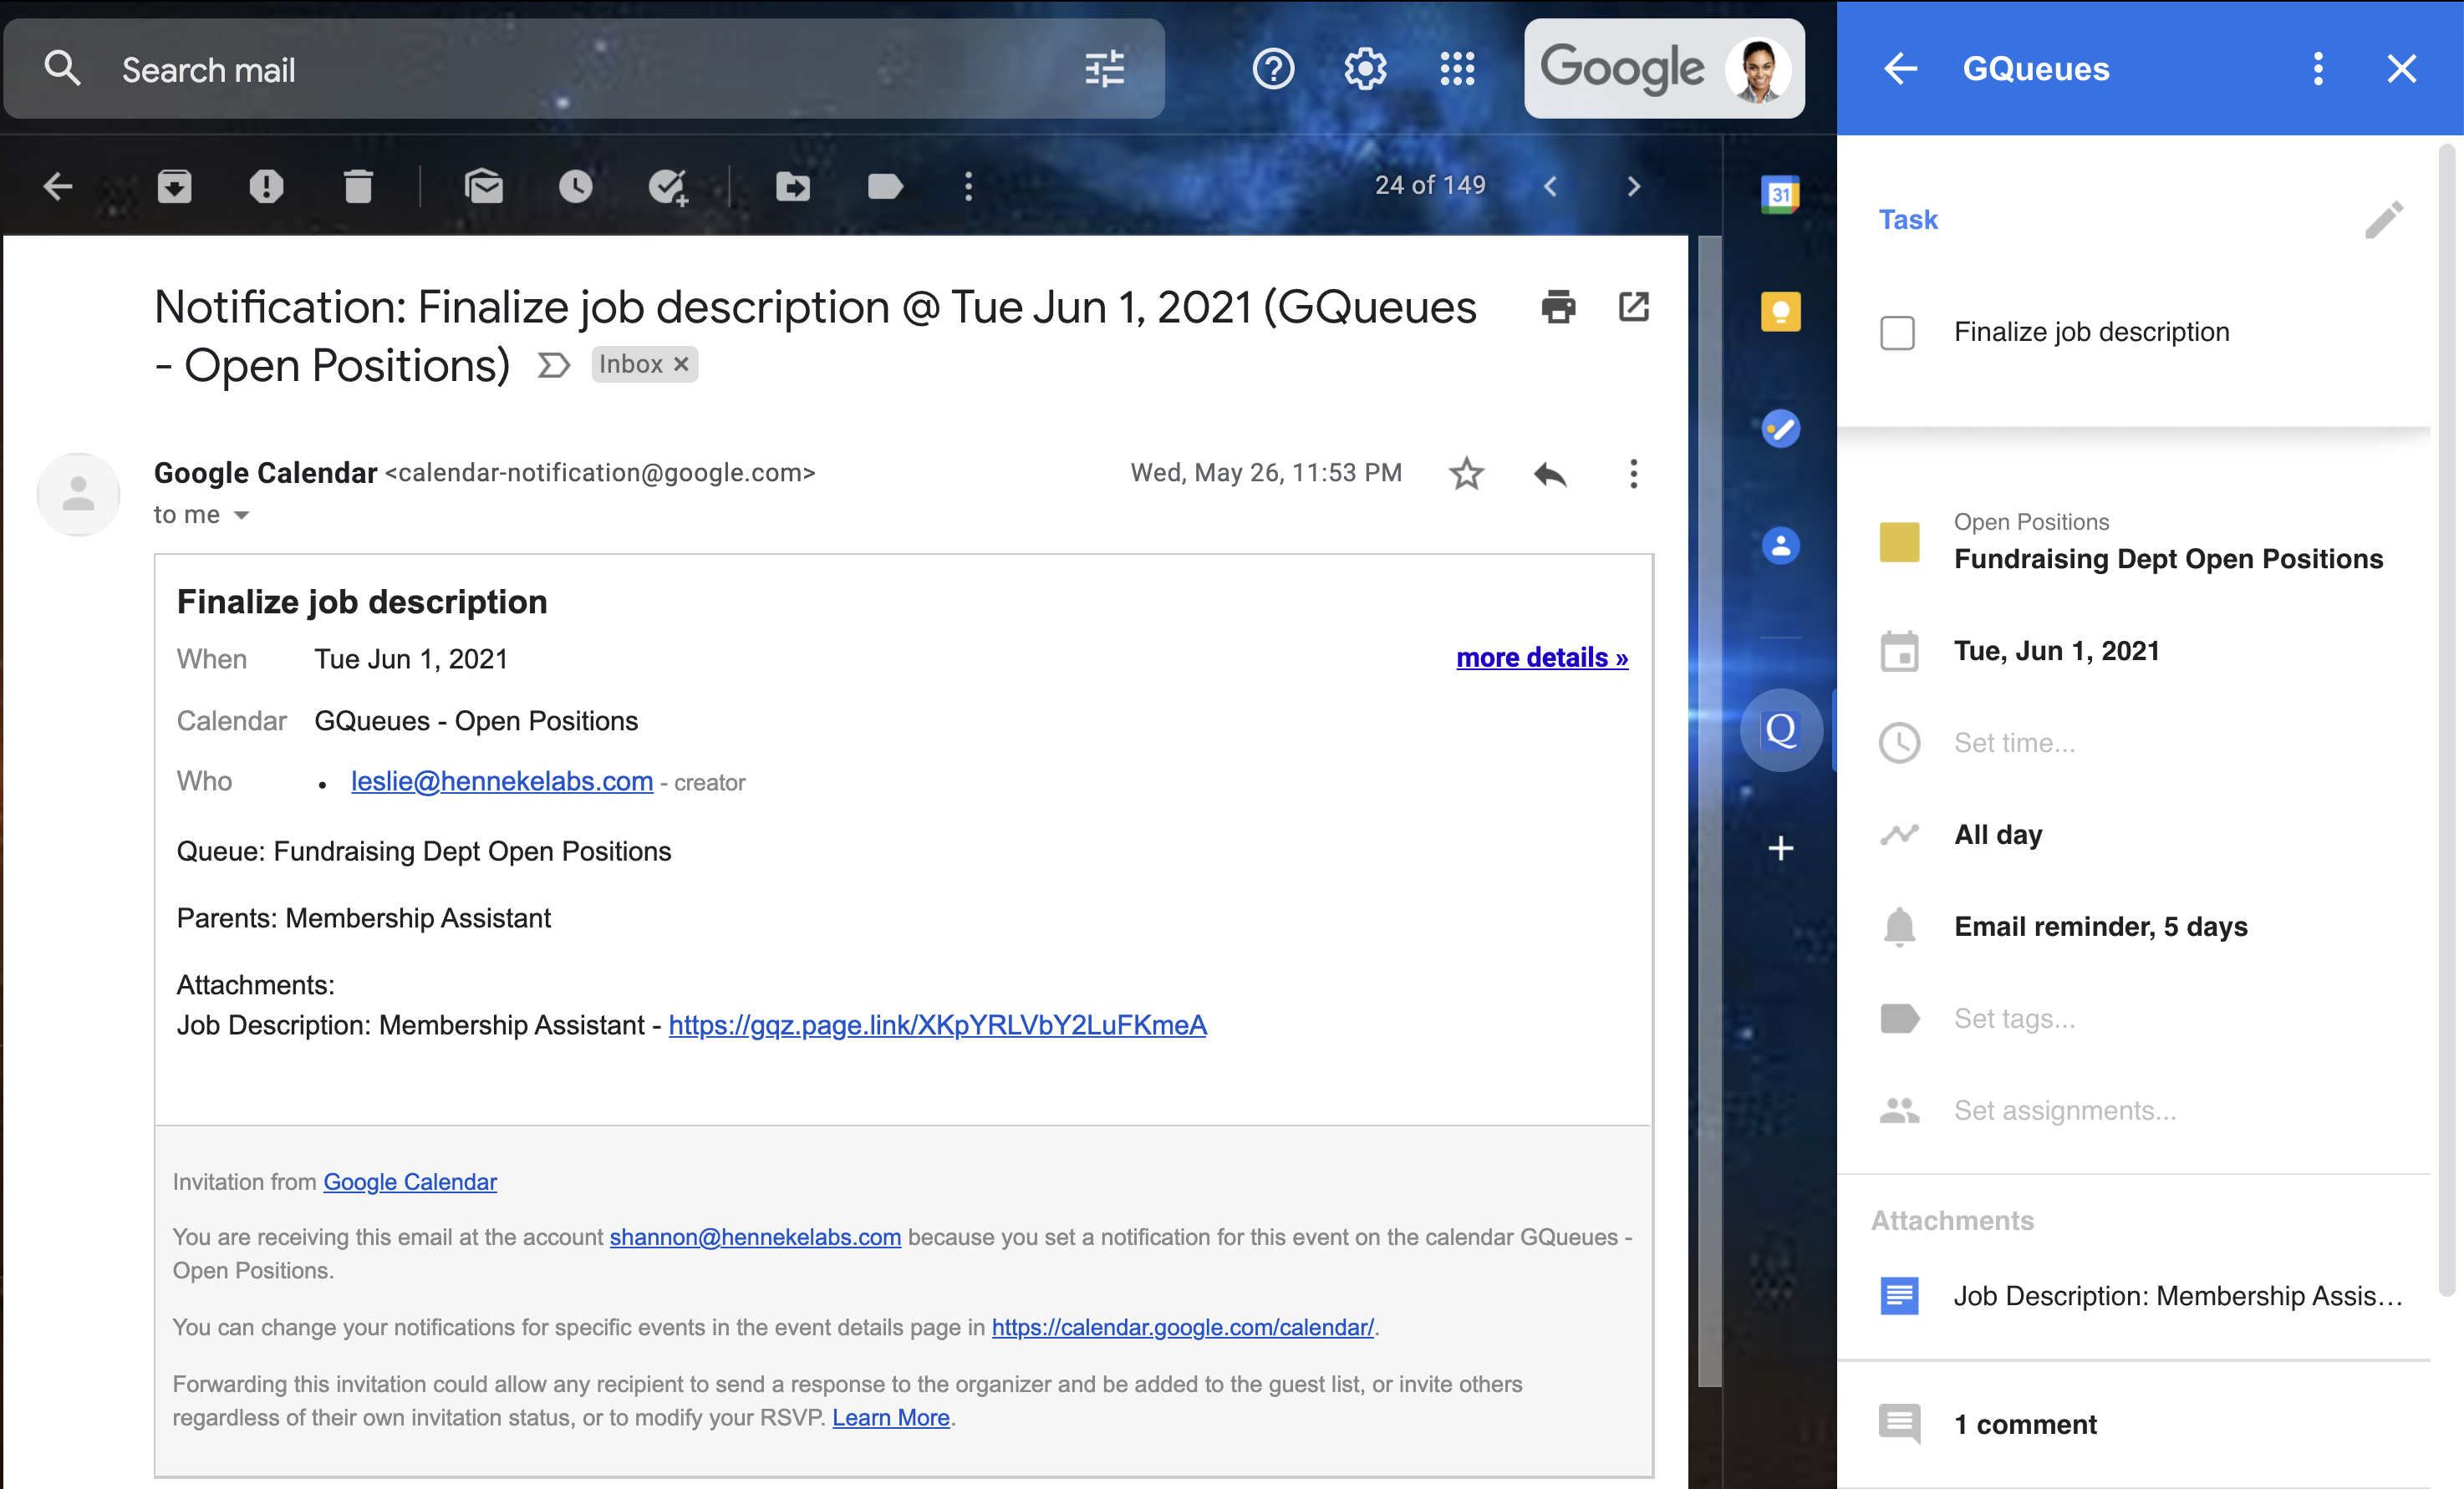 Google Calendar email reminder for an existing GQueues task, with the task details displayed in the Google Workspace Add-on